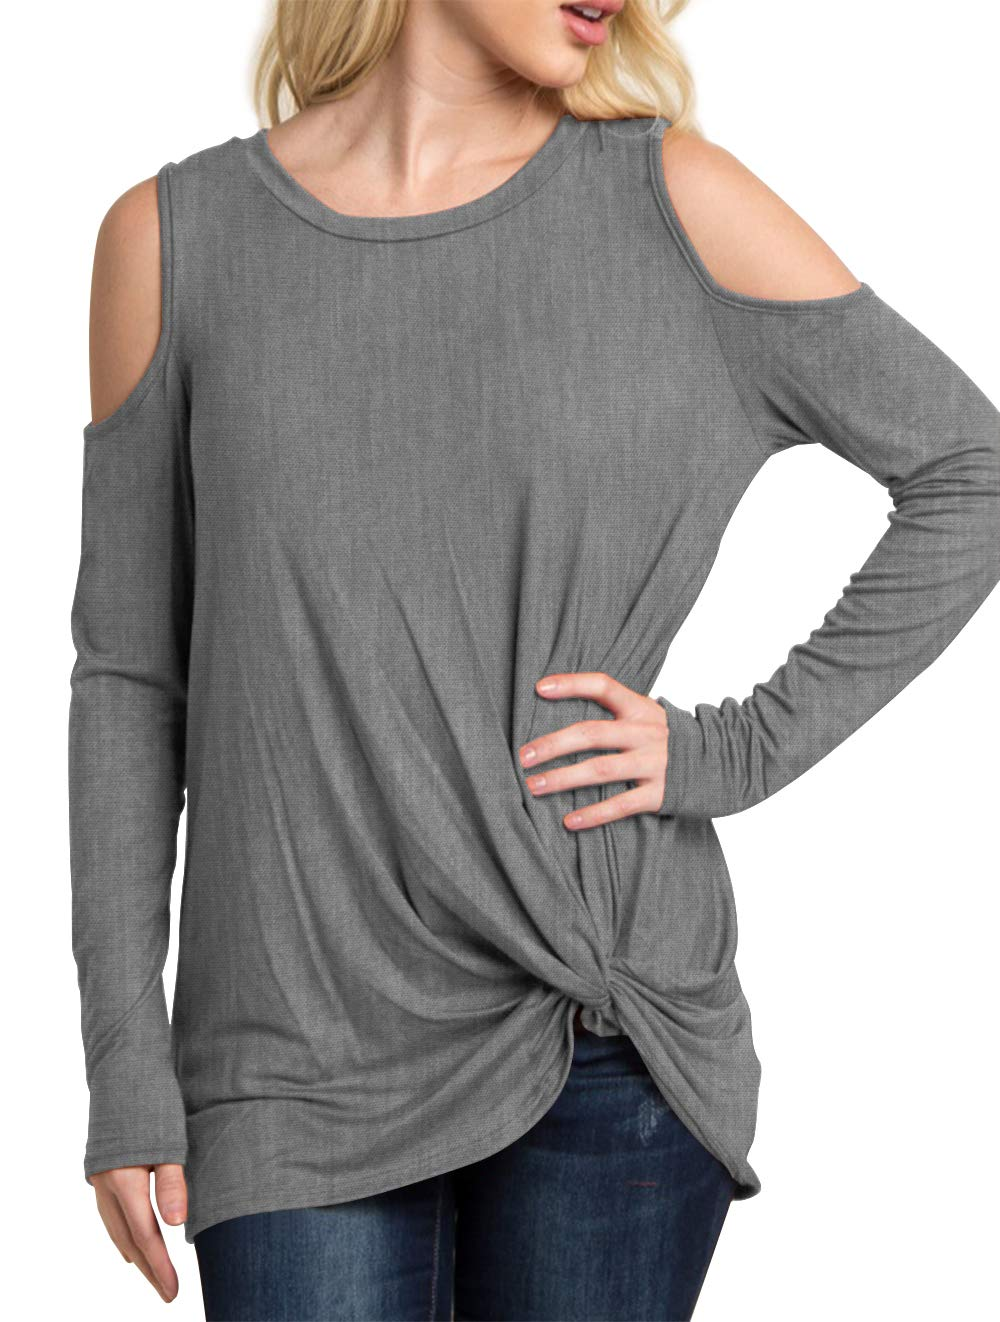 Eanklosco Women's Long Sleeve Cold Shoulder Cut Out T Shirts Casual Knot Front Tunic Tops (Gray, S)